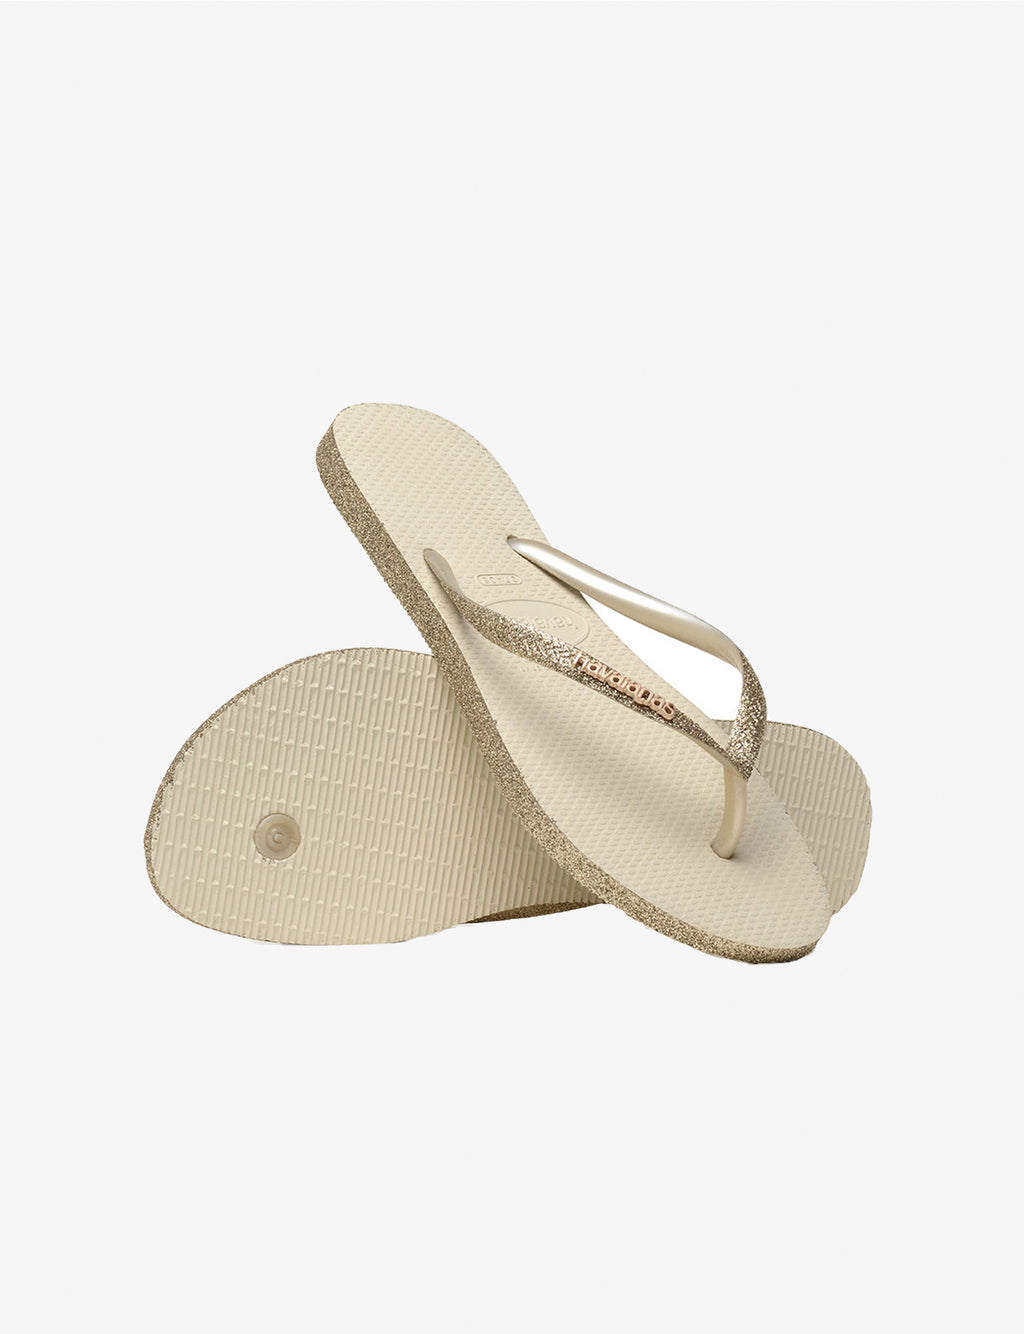 Slim Sparkle Sandal in Beige